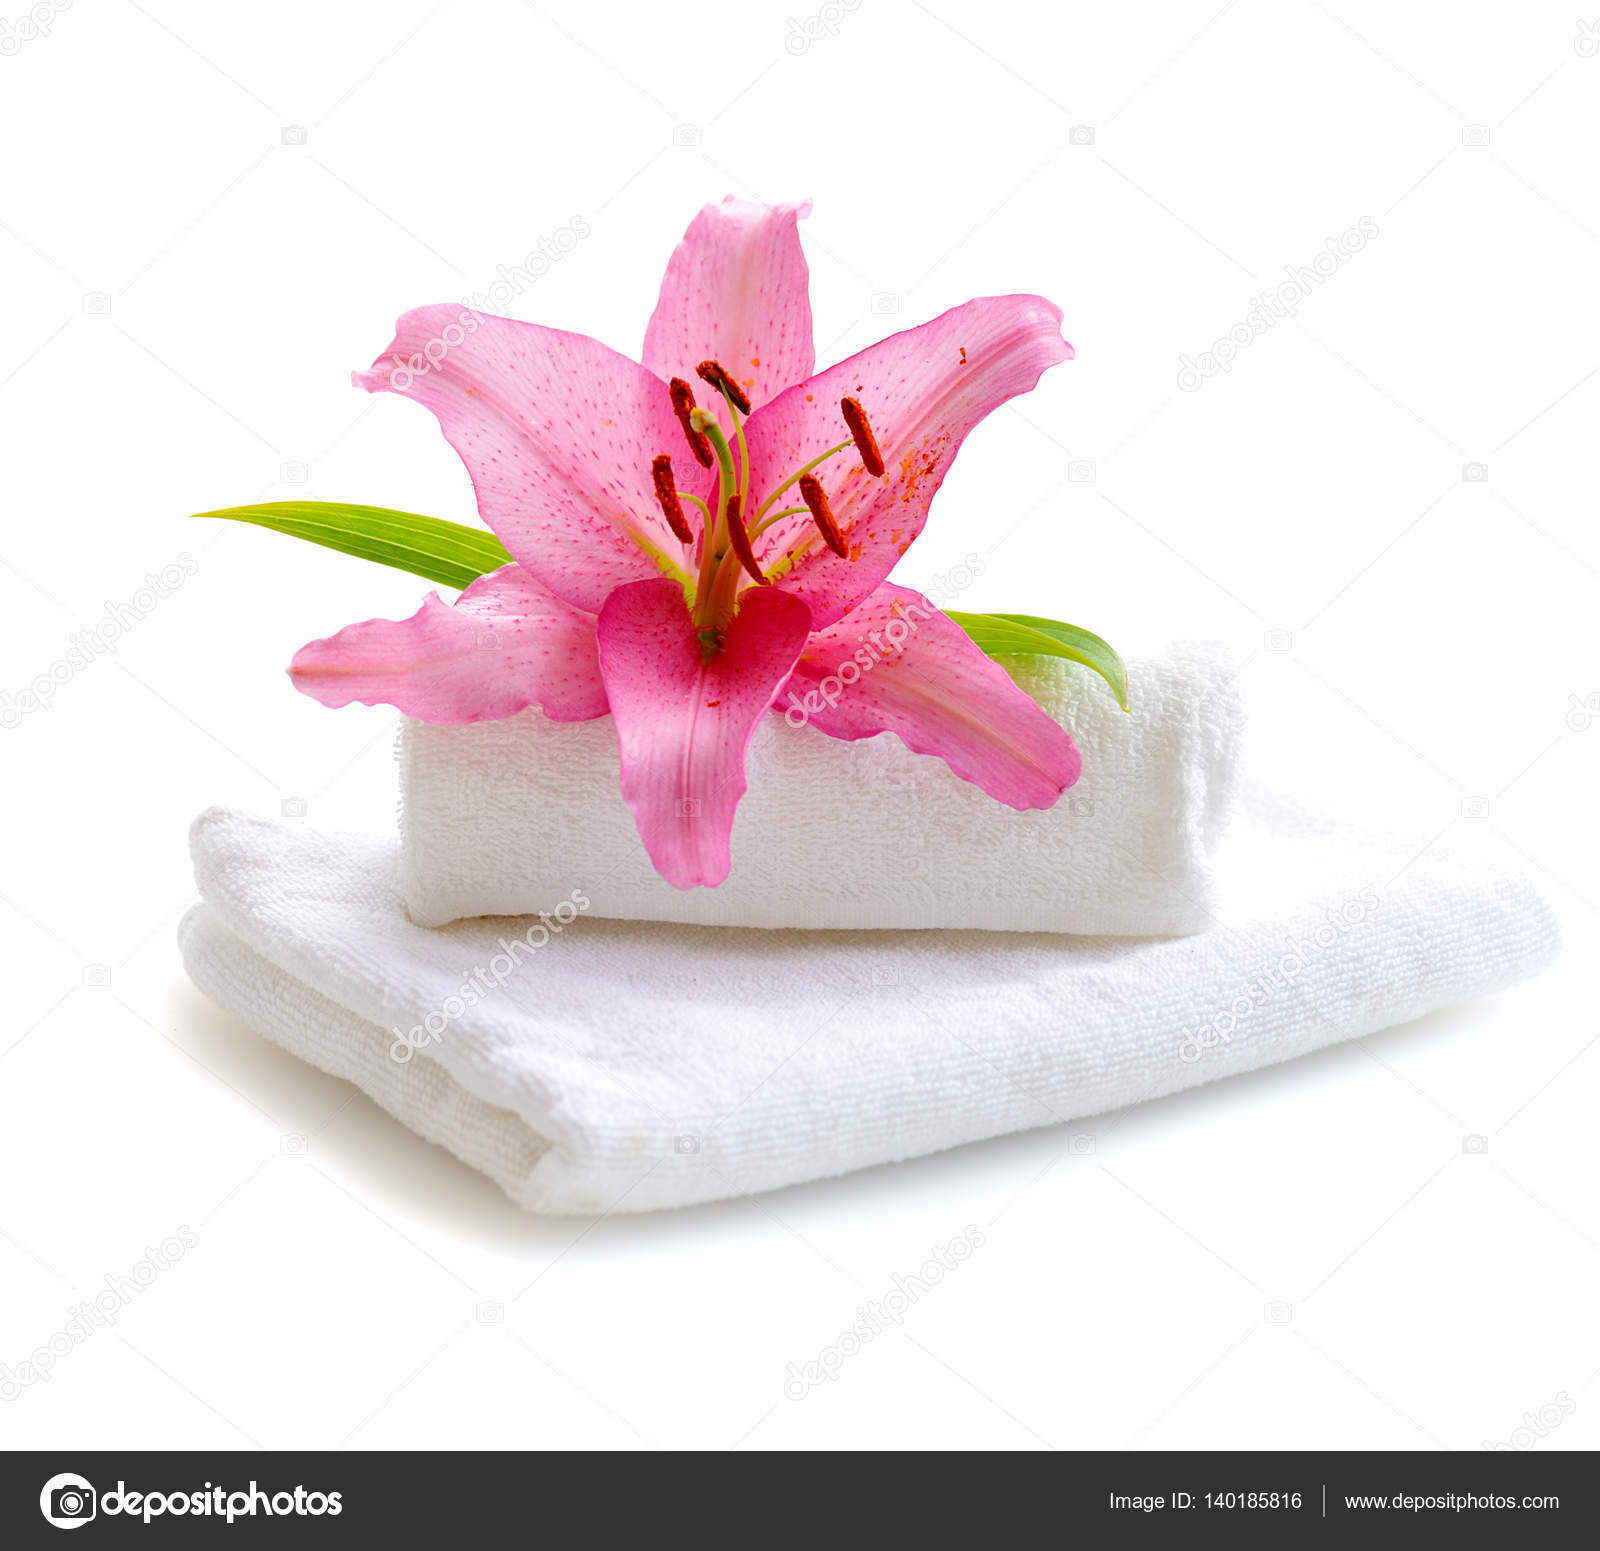 White Towels And Pink Lily Flower Stock Photo Natlit 140185816